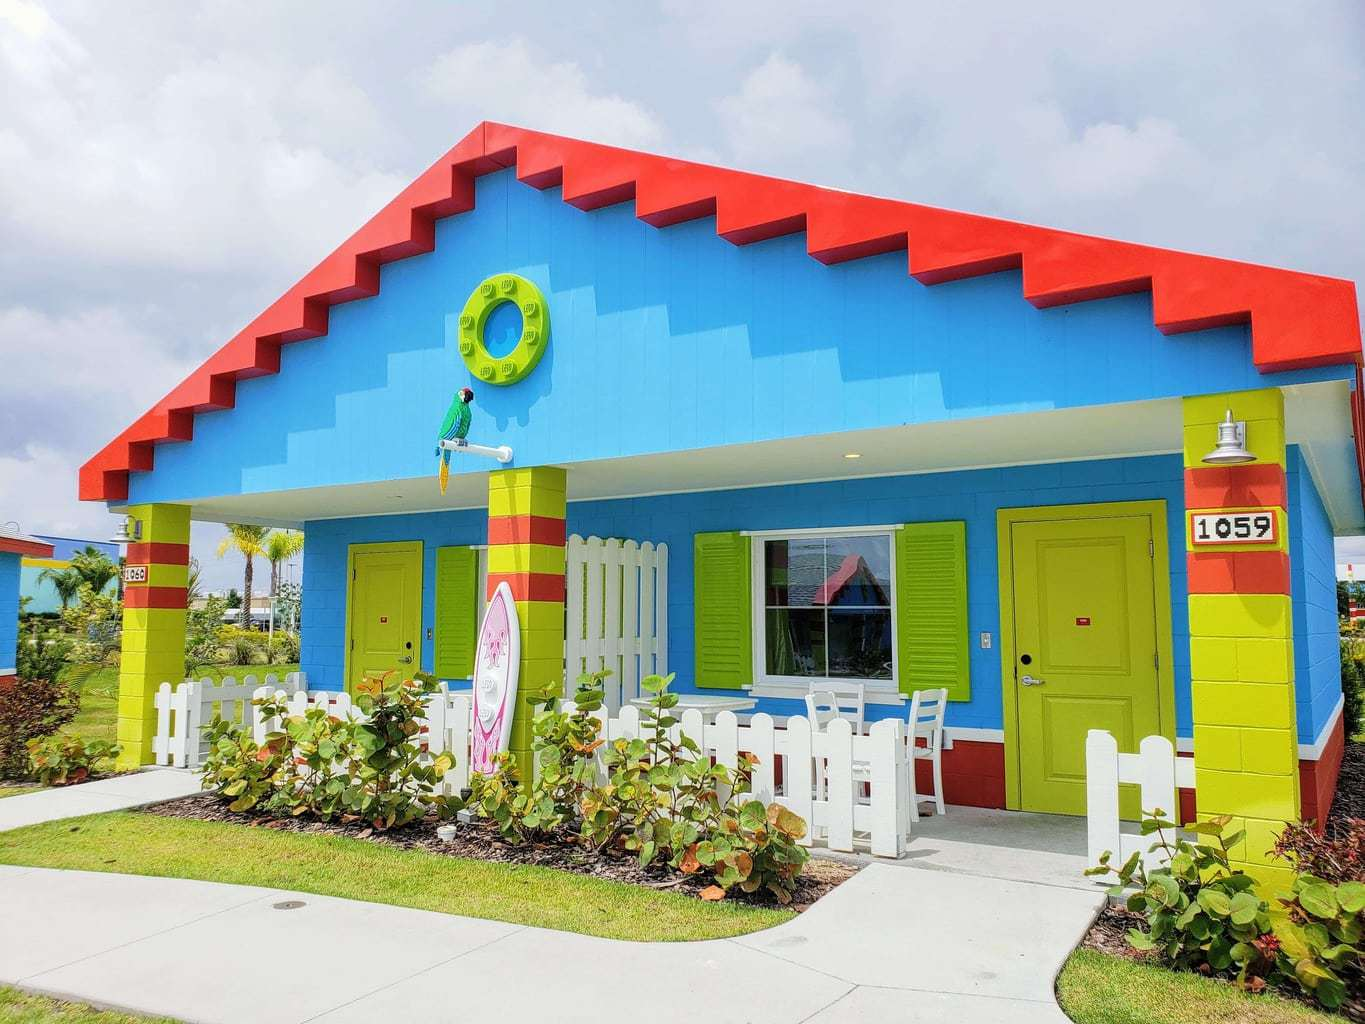 A Look Inside: Legoland Beach Resort and Legoland Florida Theme Park